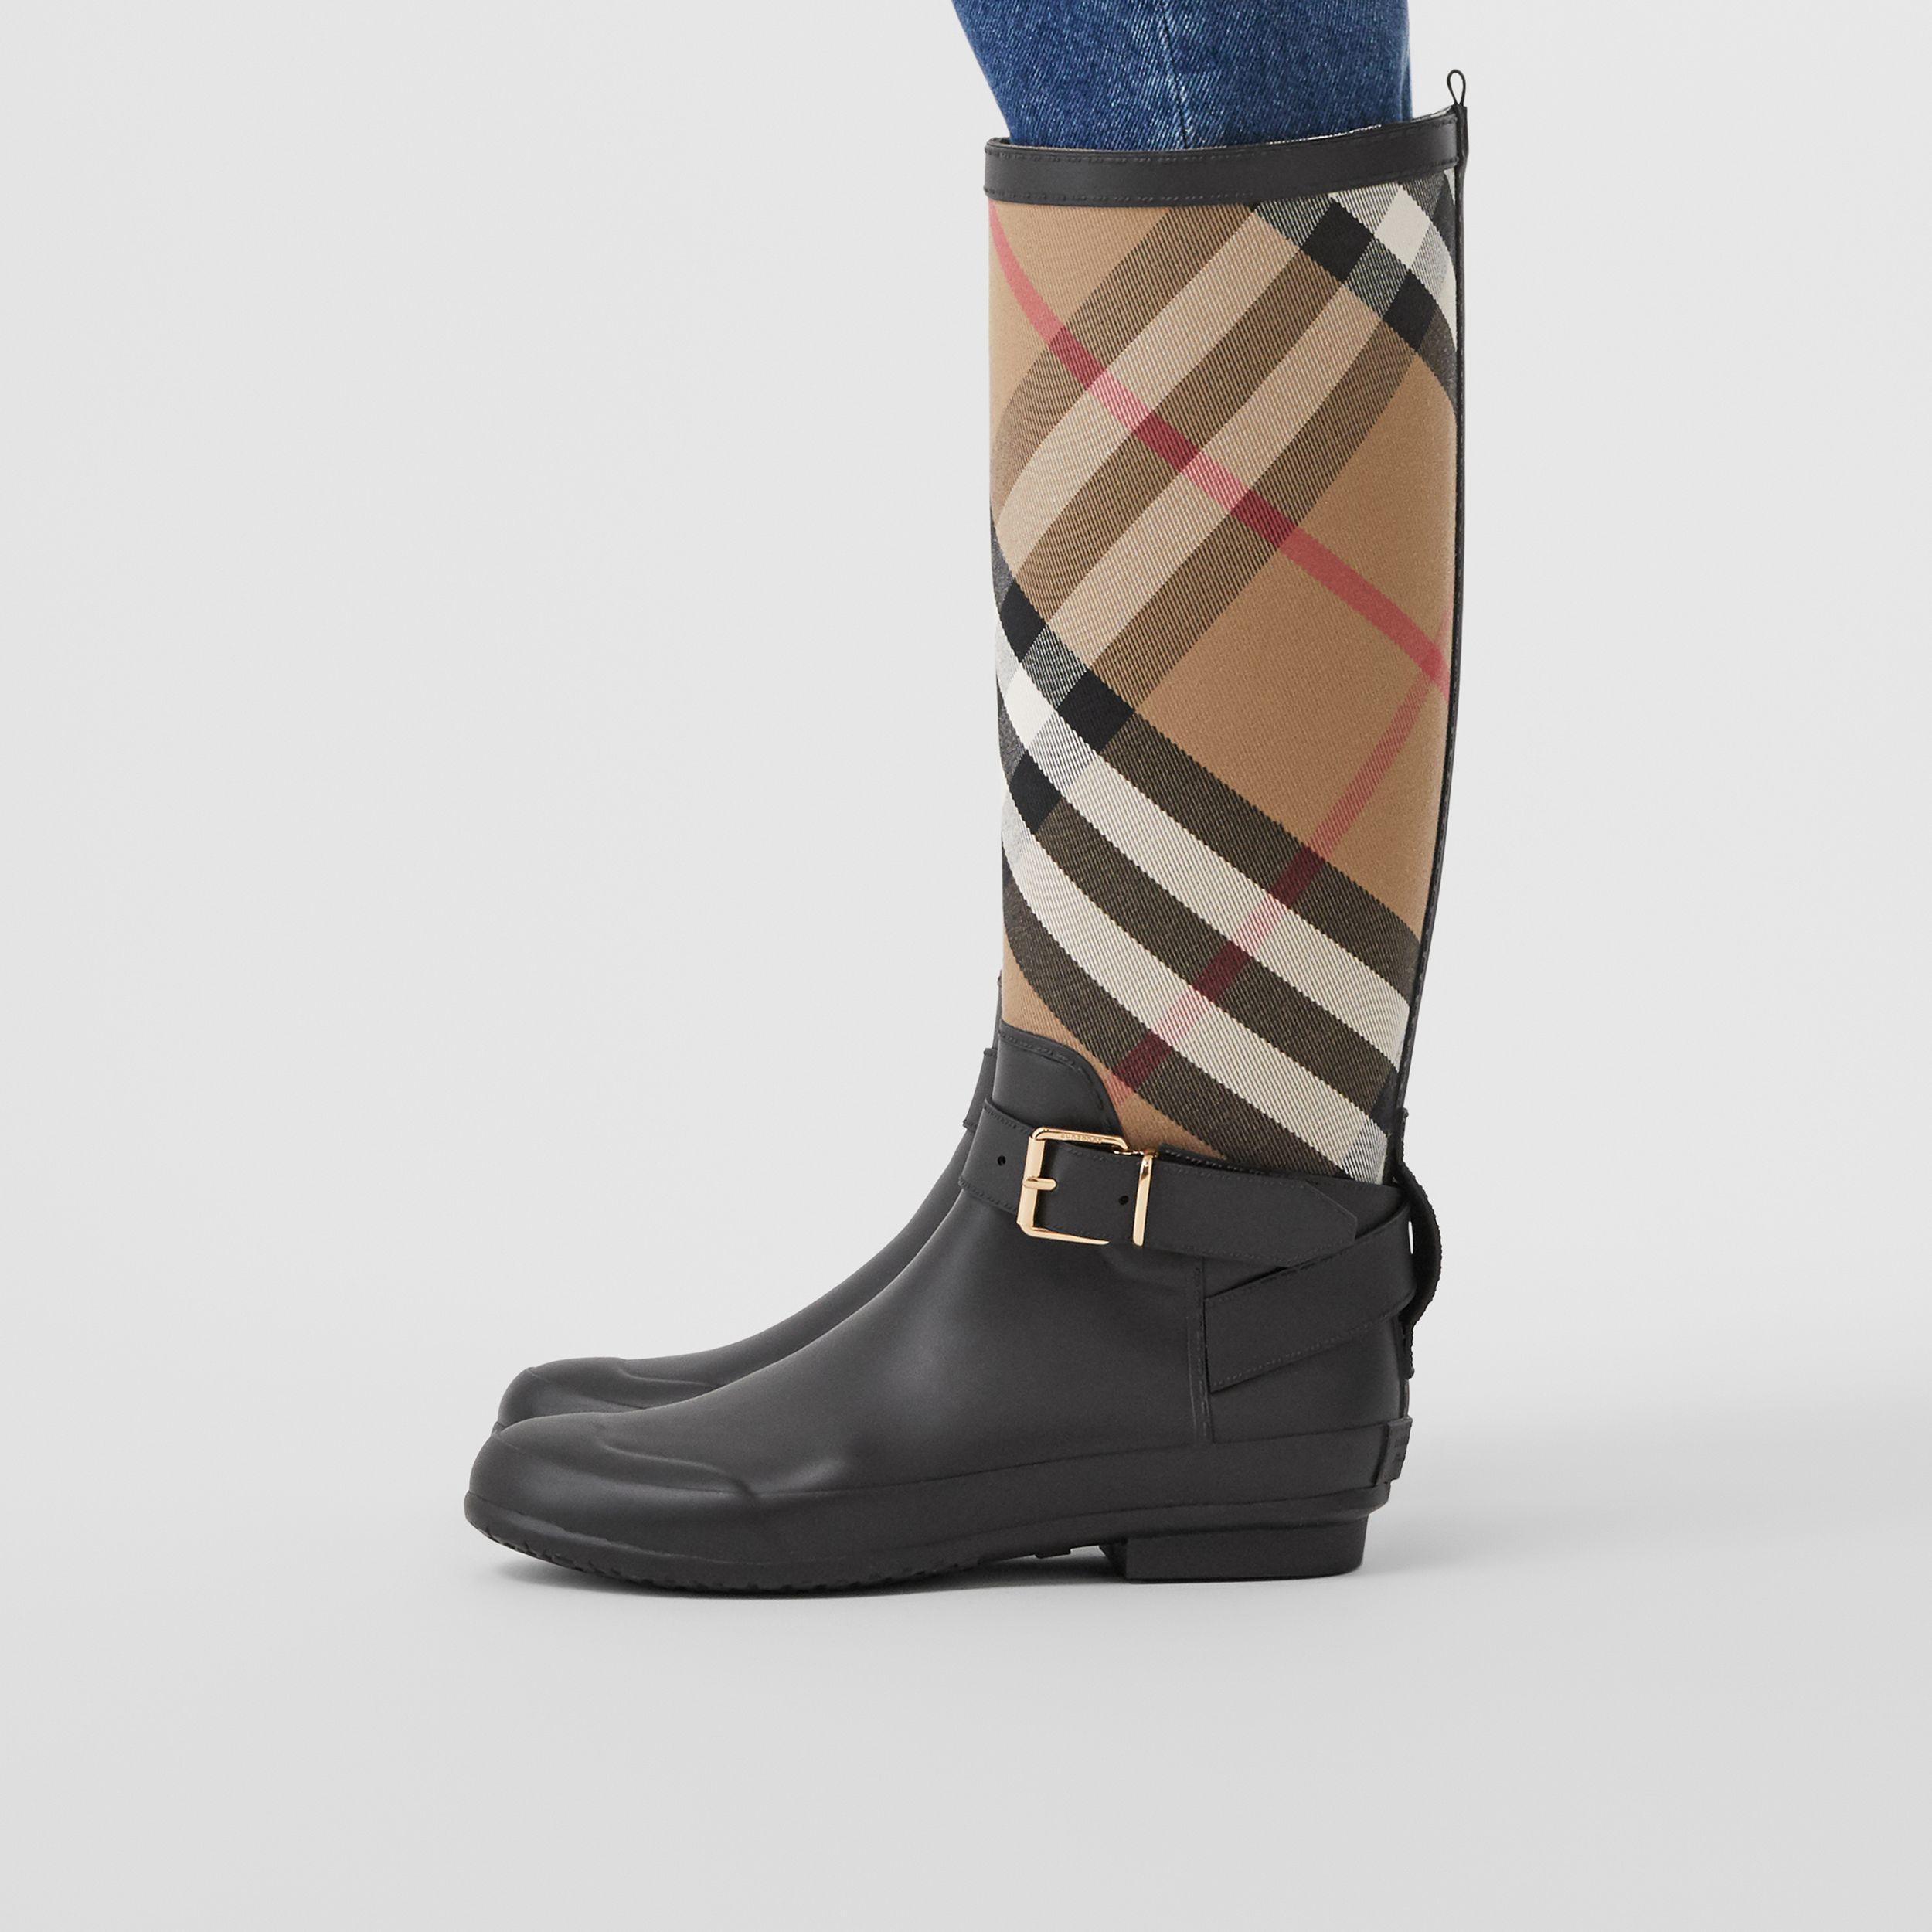 Strap Detail House Check and Rubber Rain Boots in Black/archive Beige - Women | Burberry Australia - 3